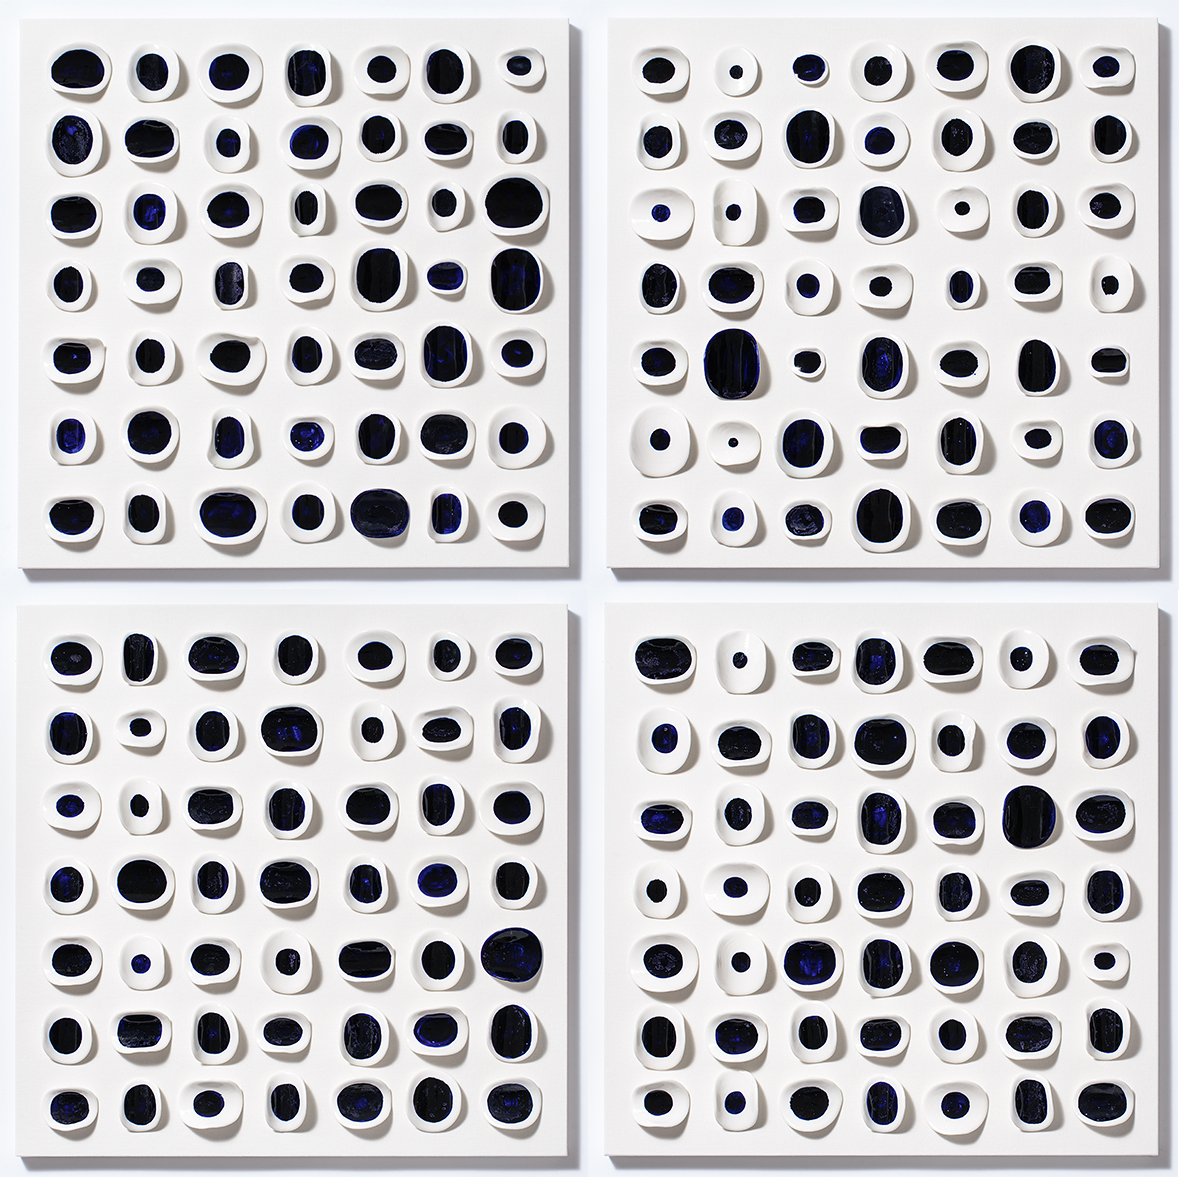 Blue Dots, Hjung Kim